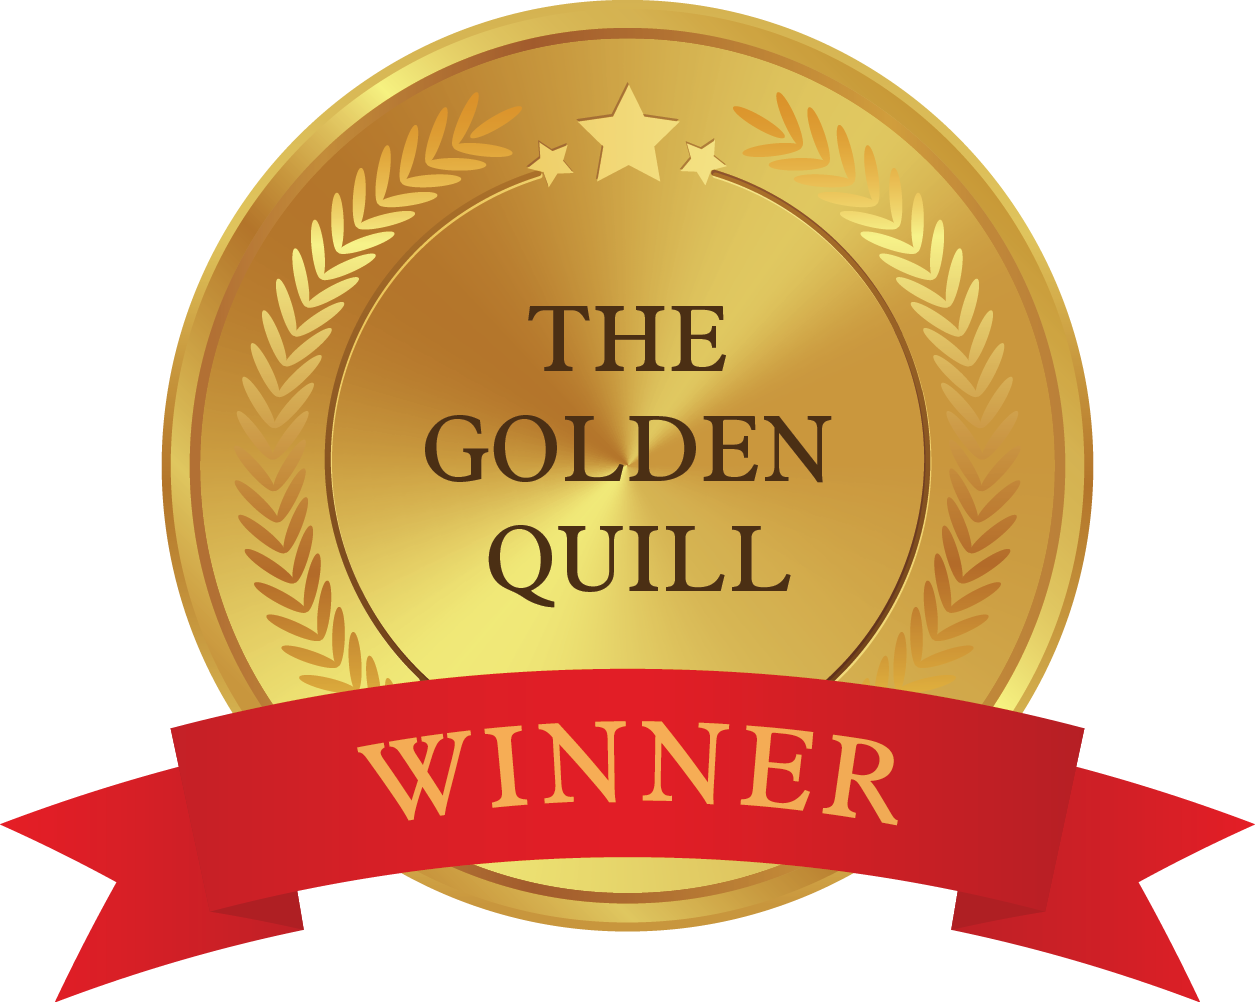 THE GOLDEN QUILL